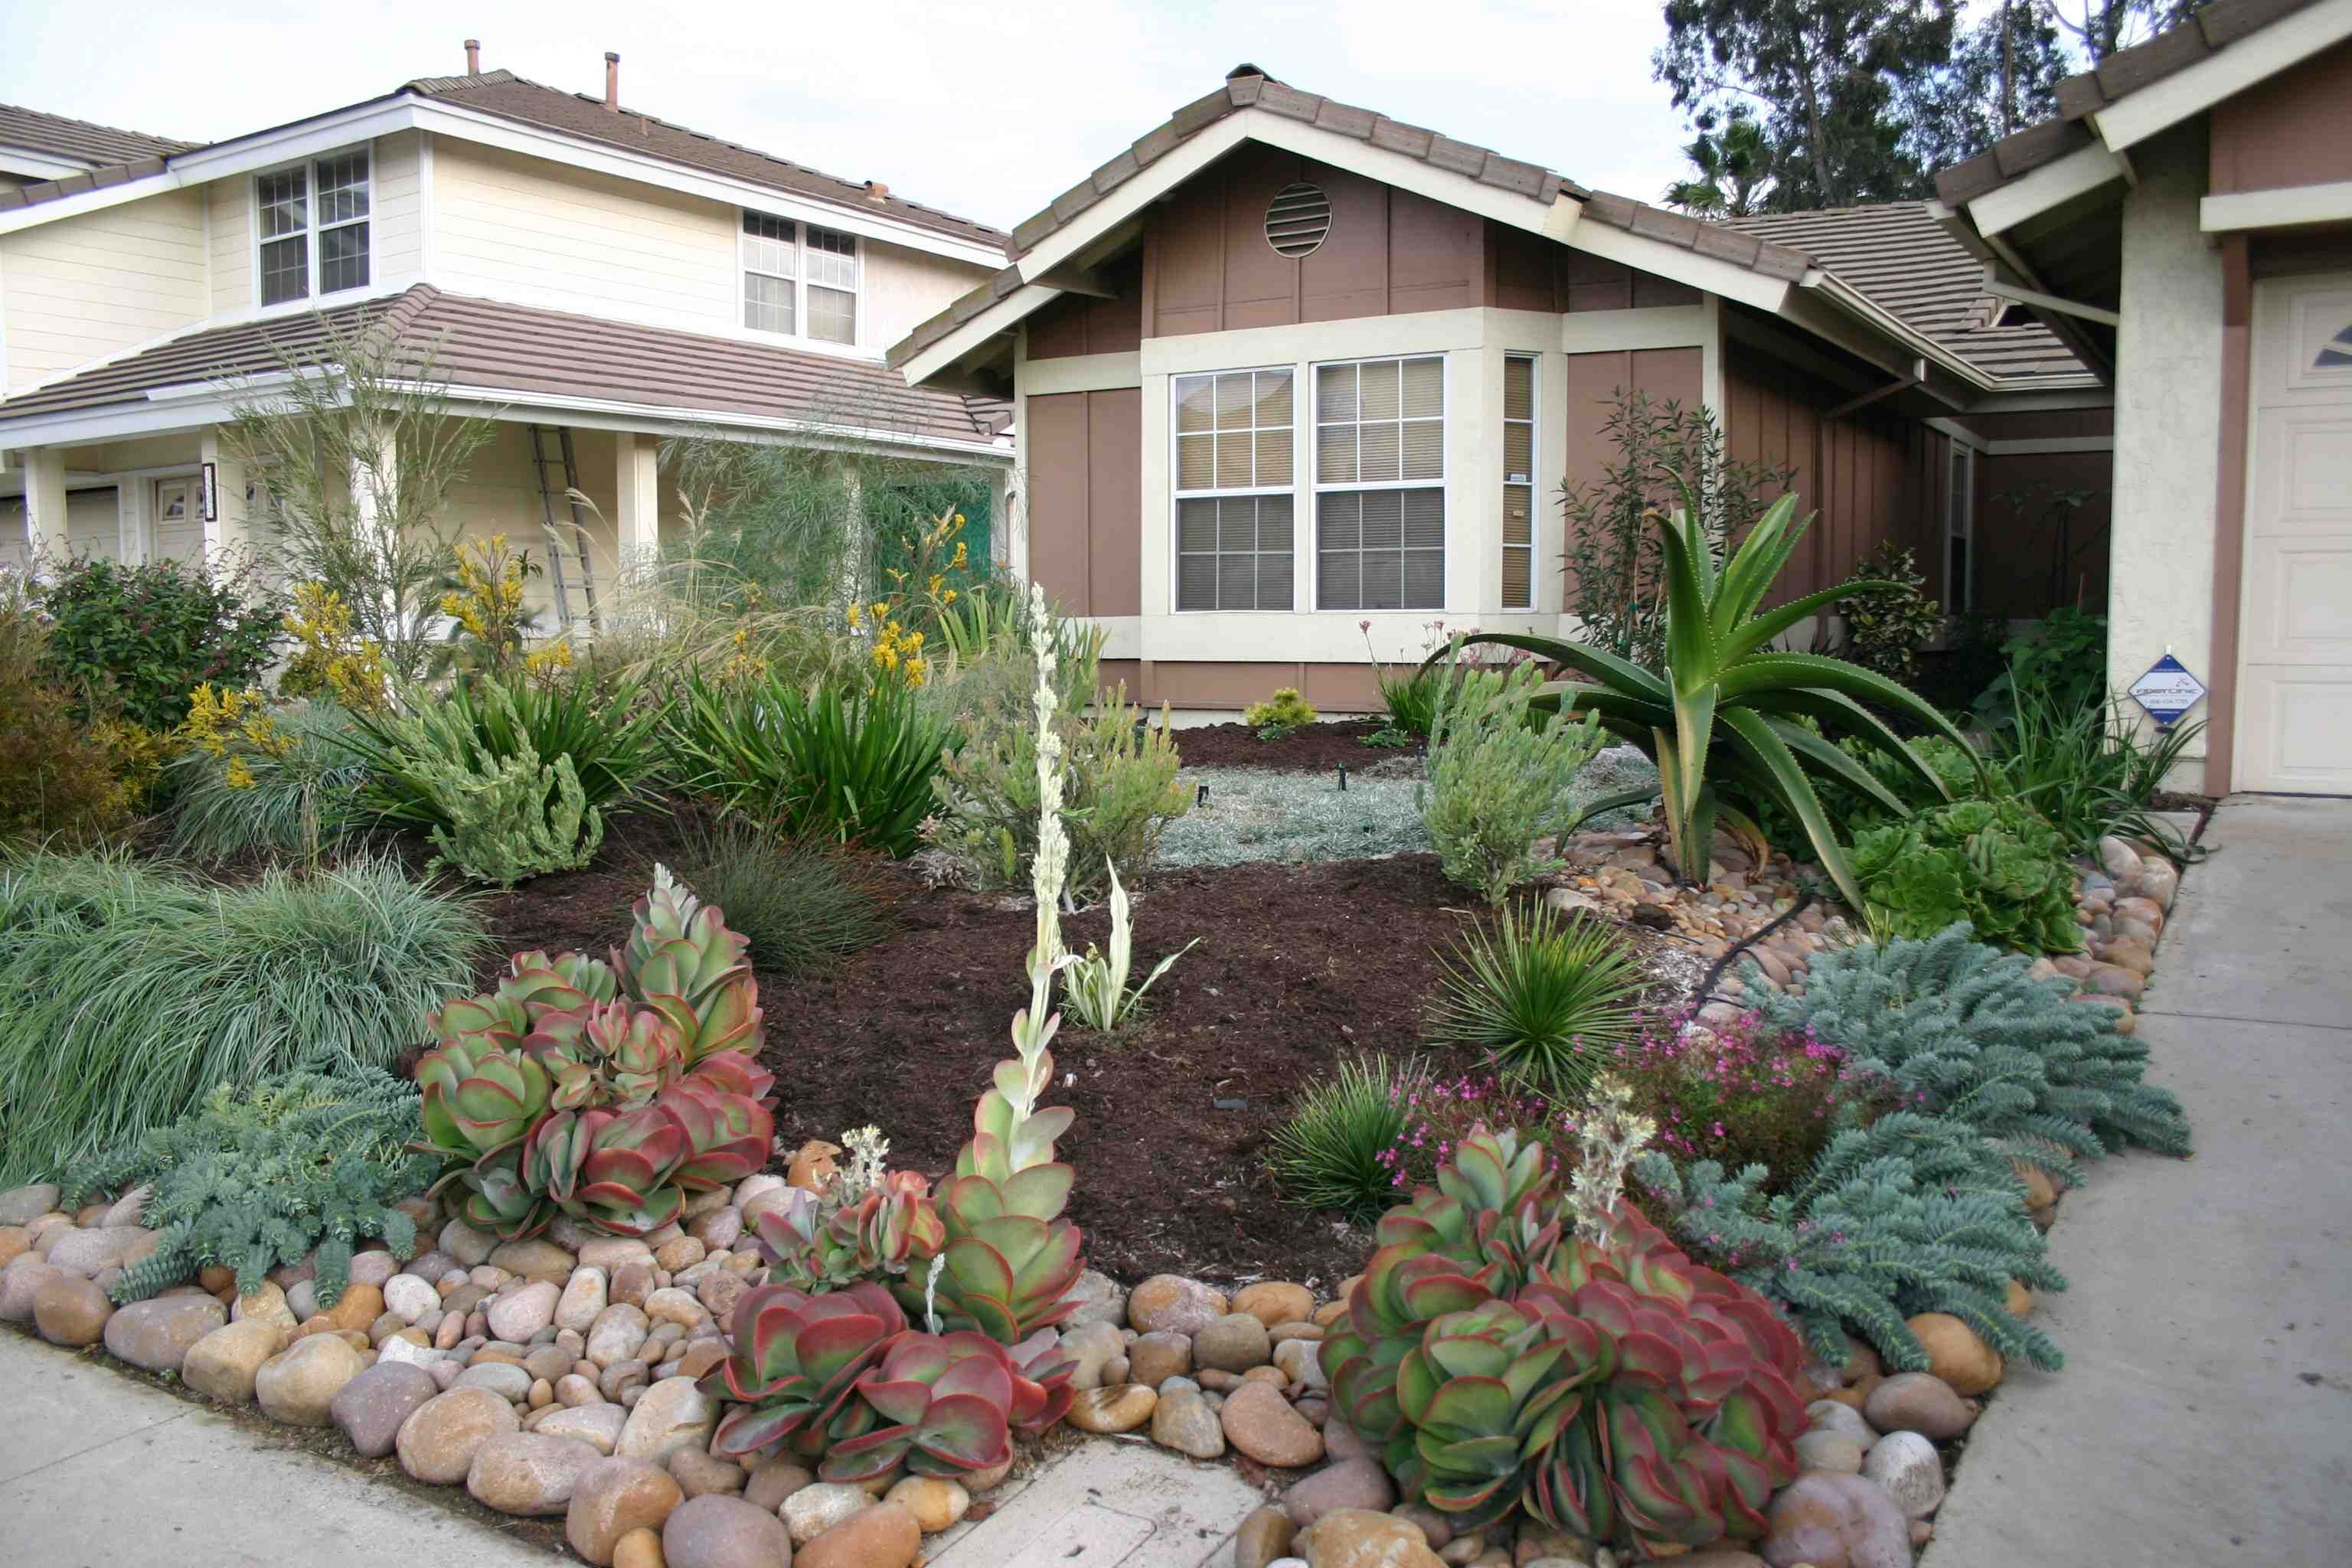 A suburban home that shed its front lawn | Garden | Pinterest ...